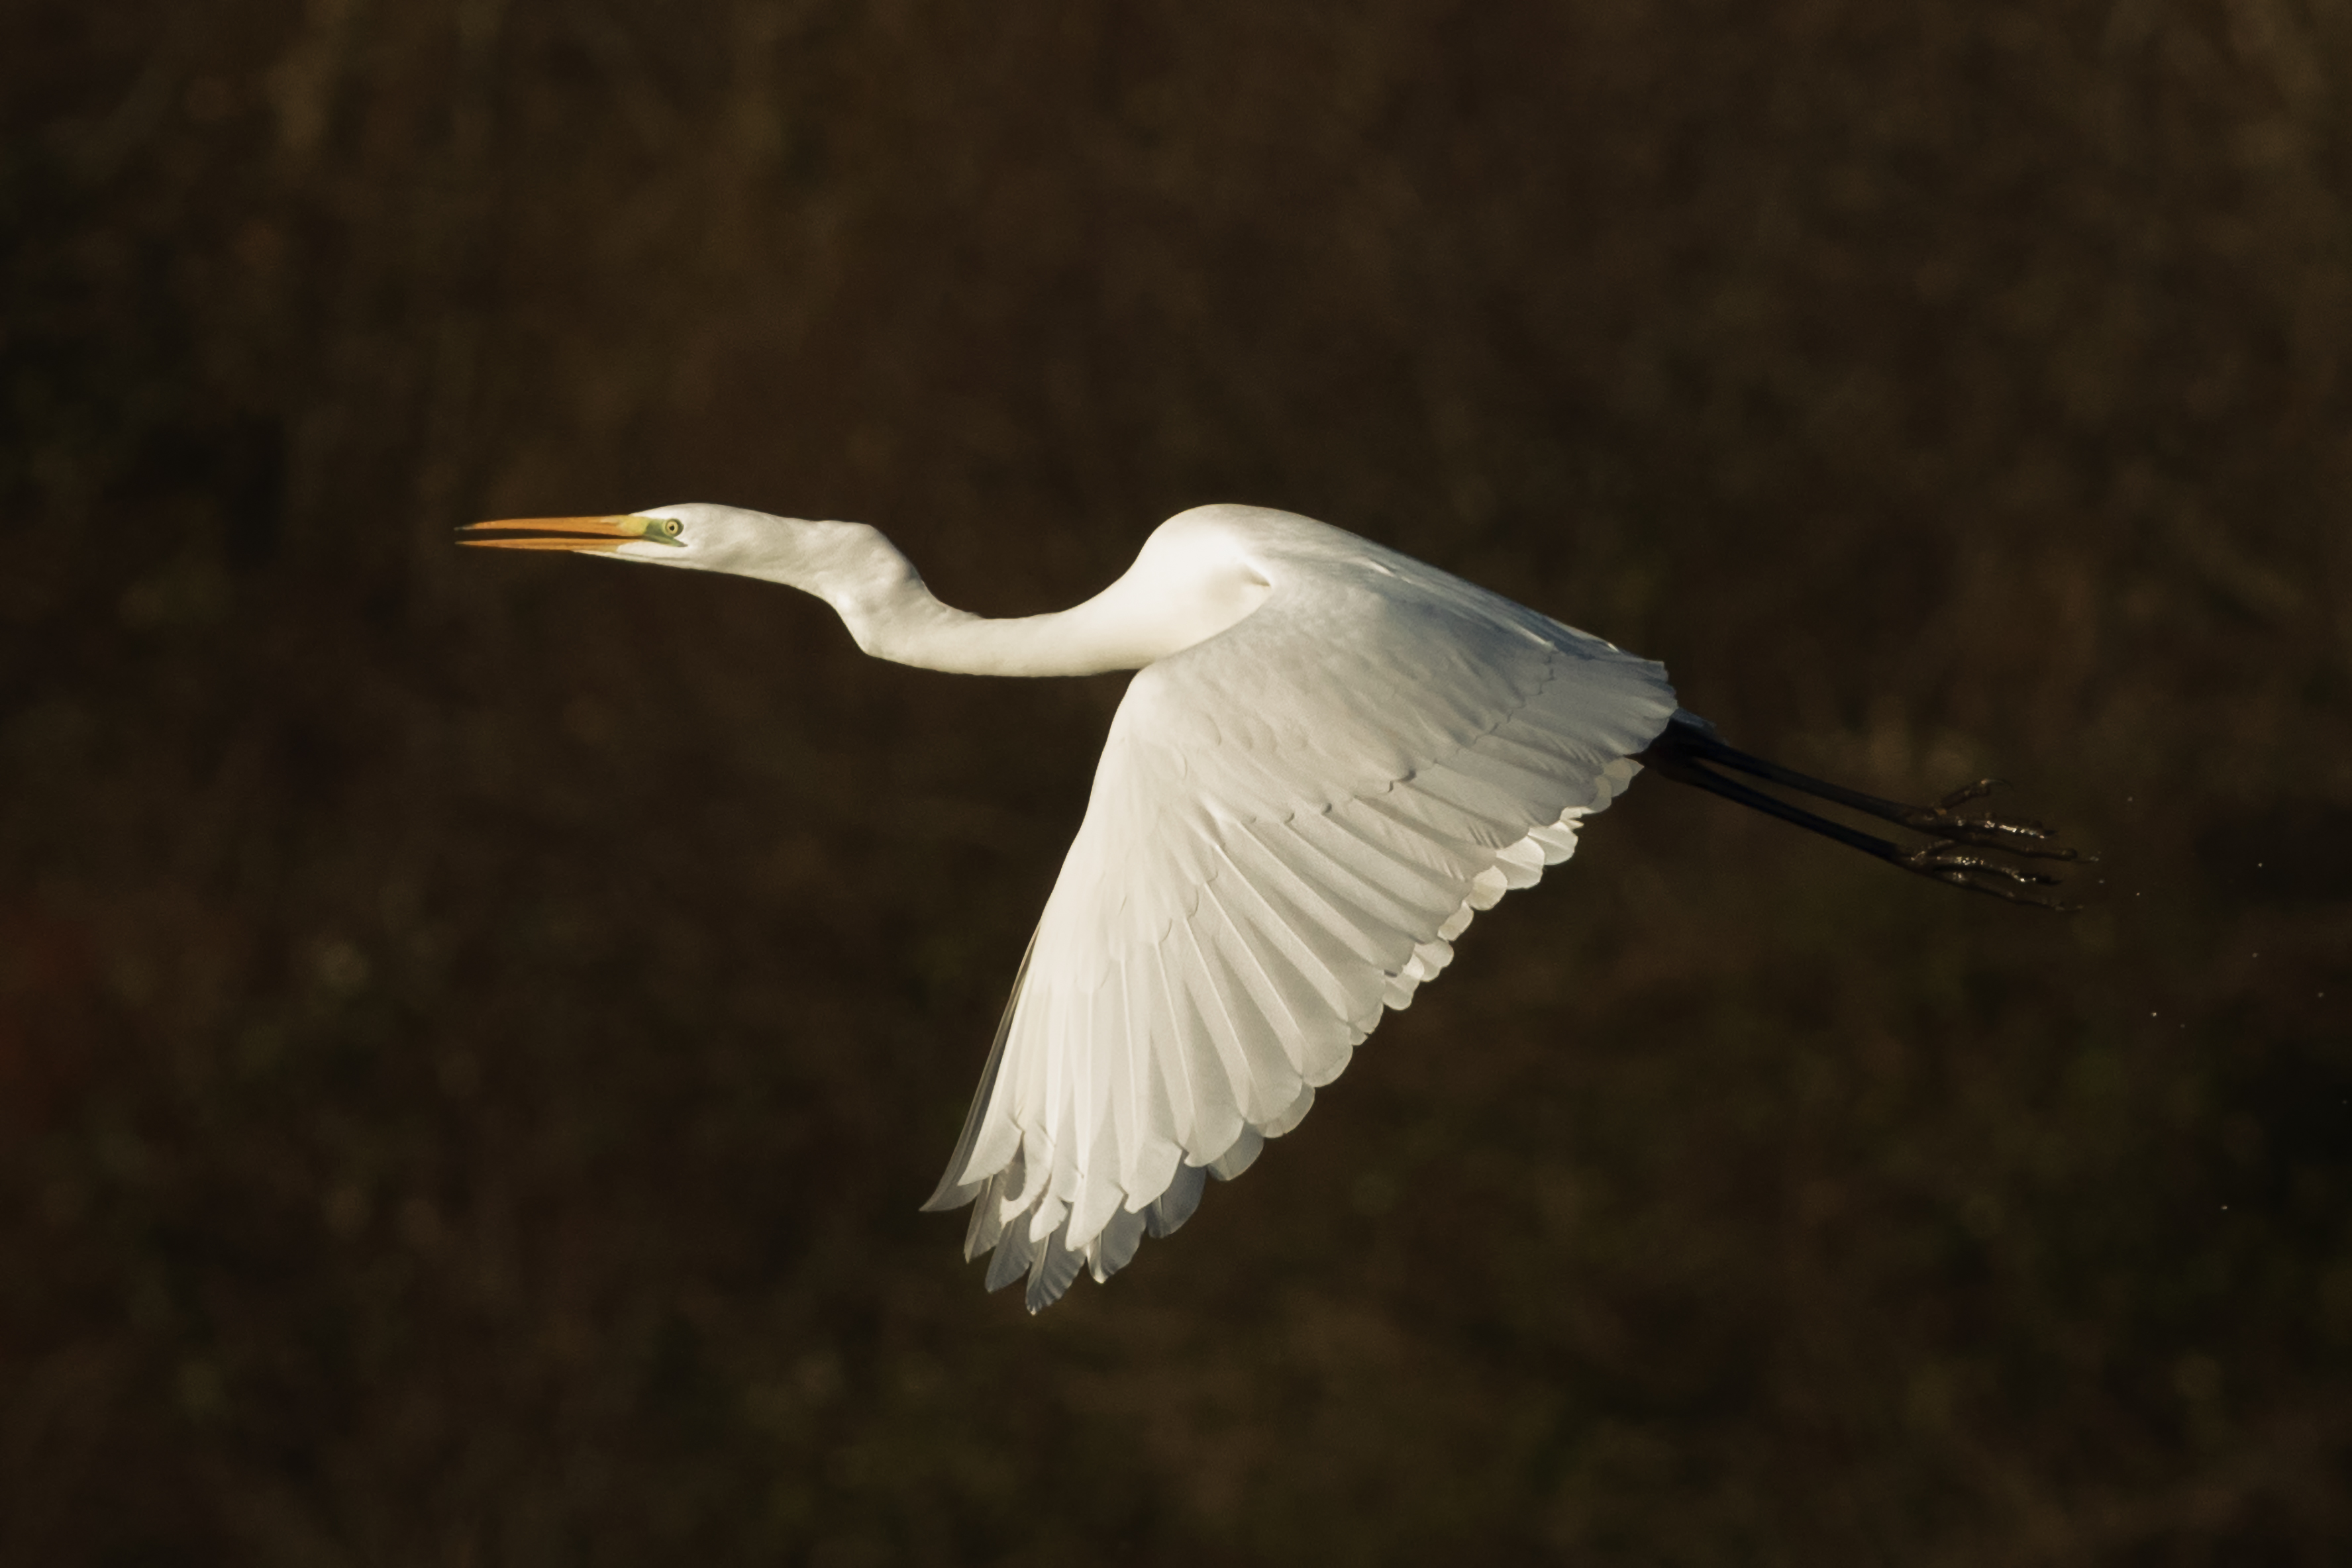 Great-white-egret-lytton-images-print-kent-wildlife-photography.jpg